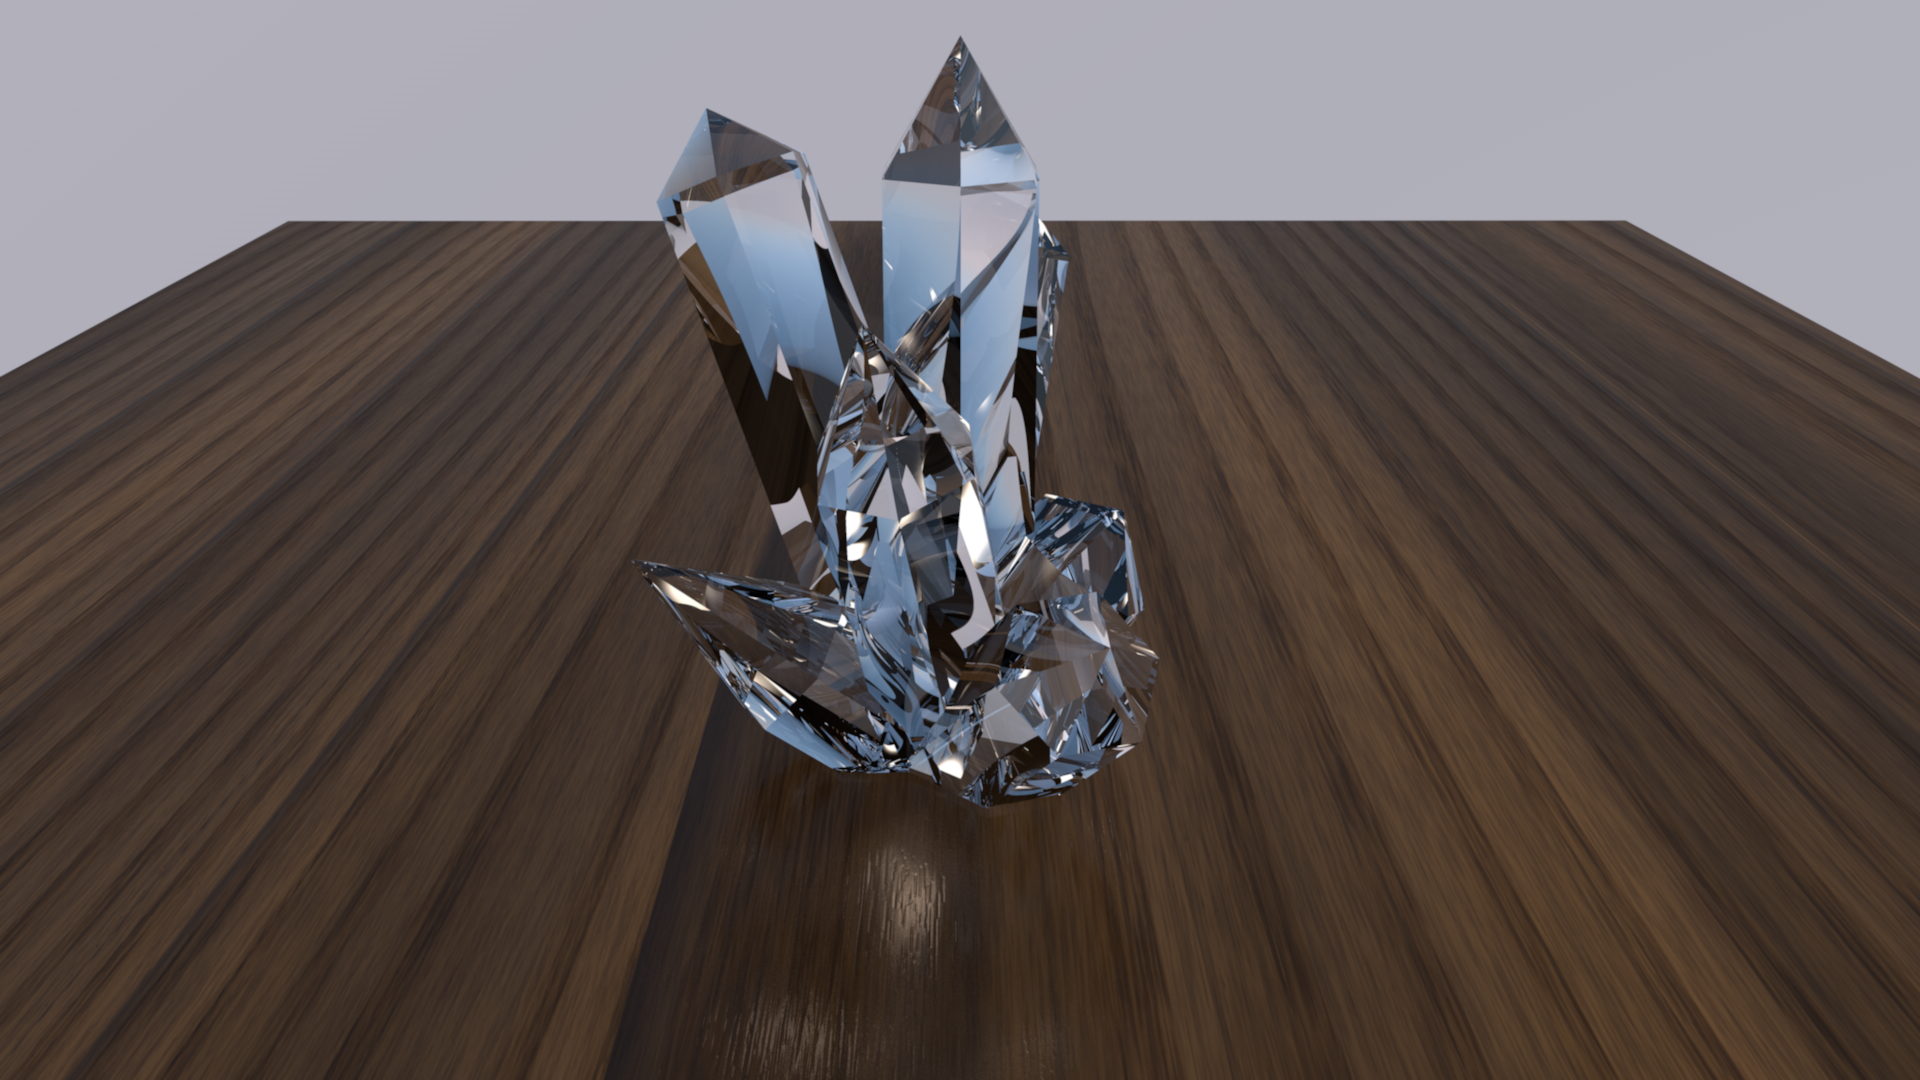 Crystal(Already repaired)